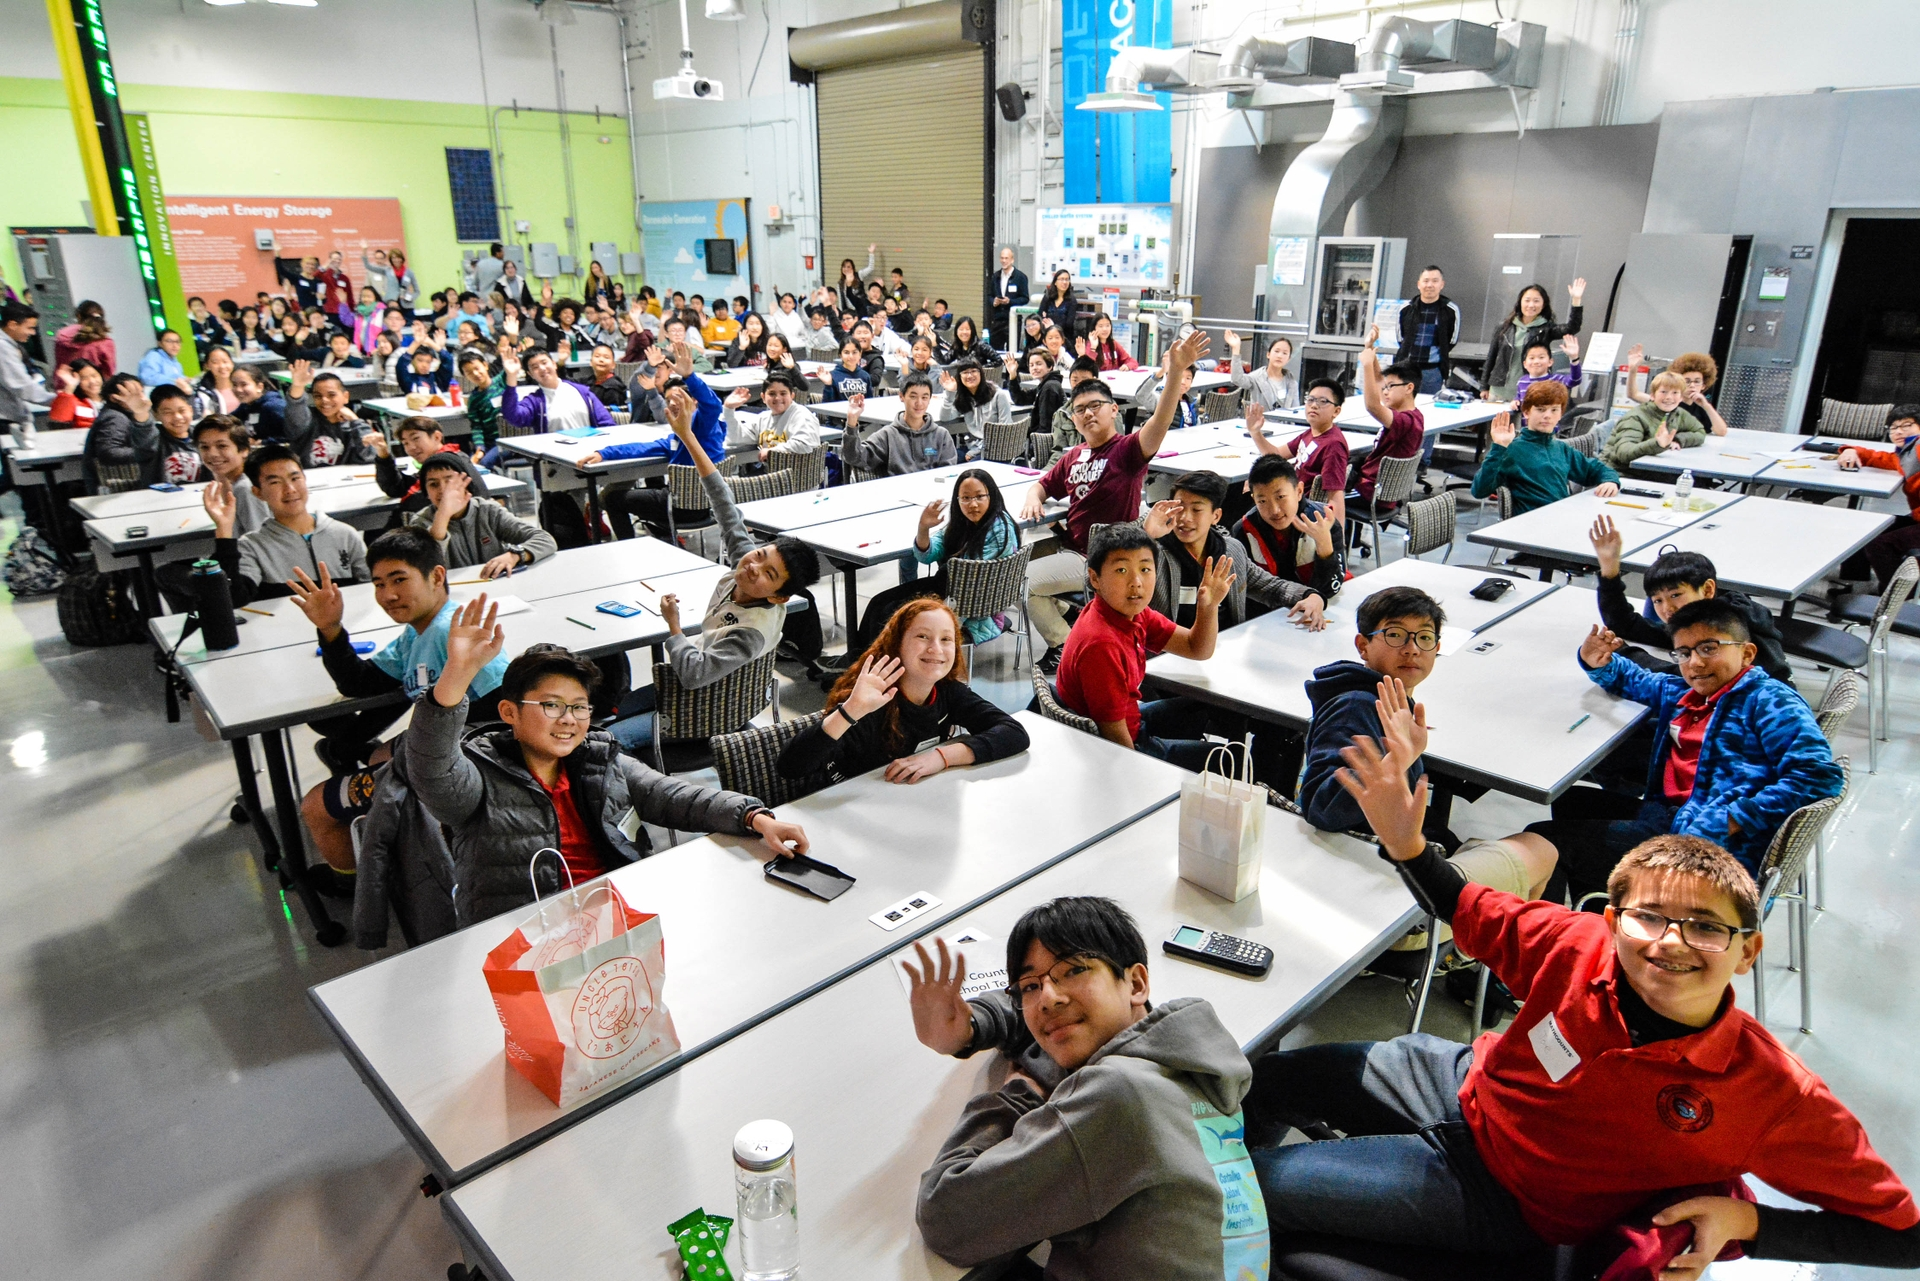 More than 100 middle school students from the San Gabriel Valley competed in this year's MATHCOUNTS chapter math competition.